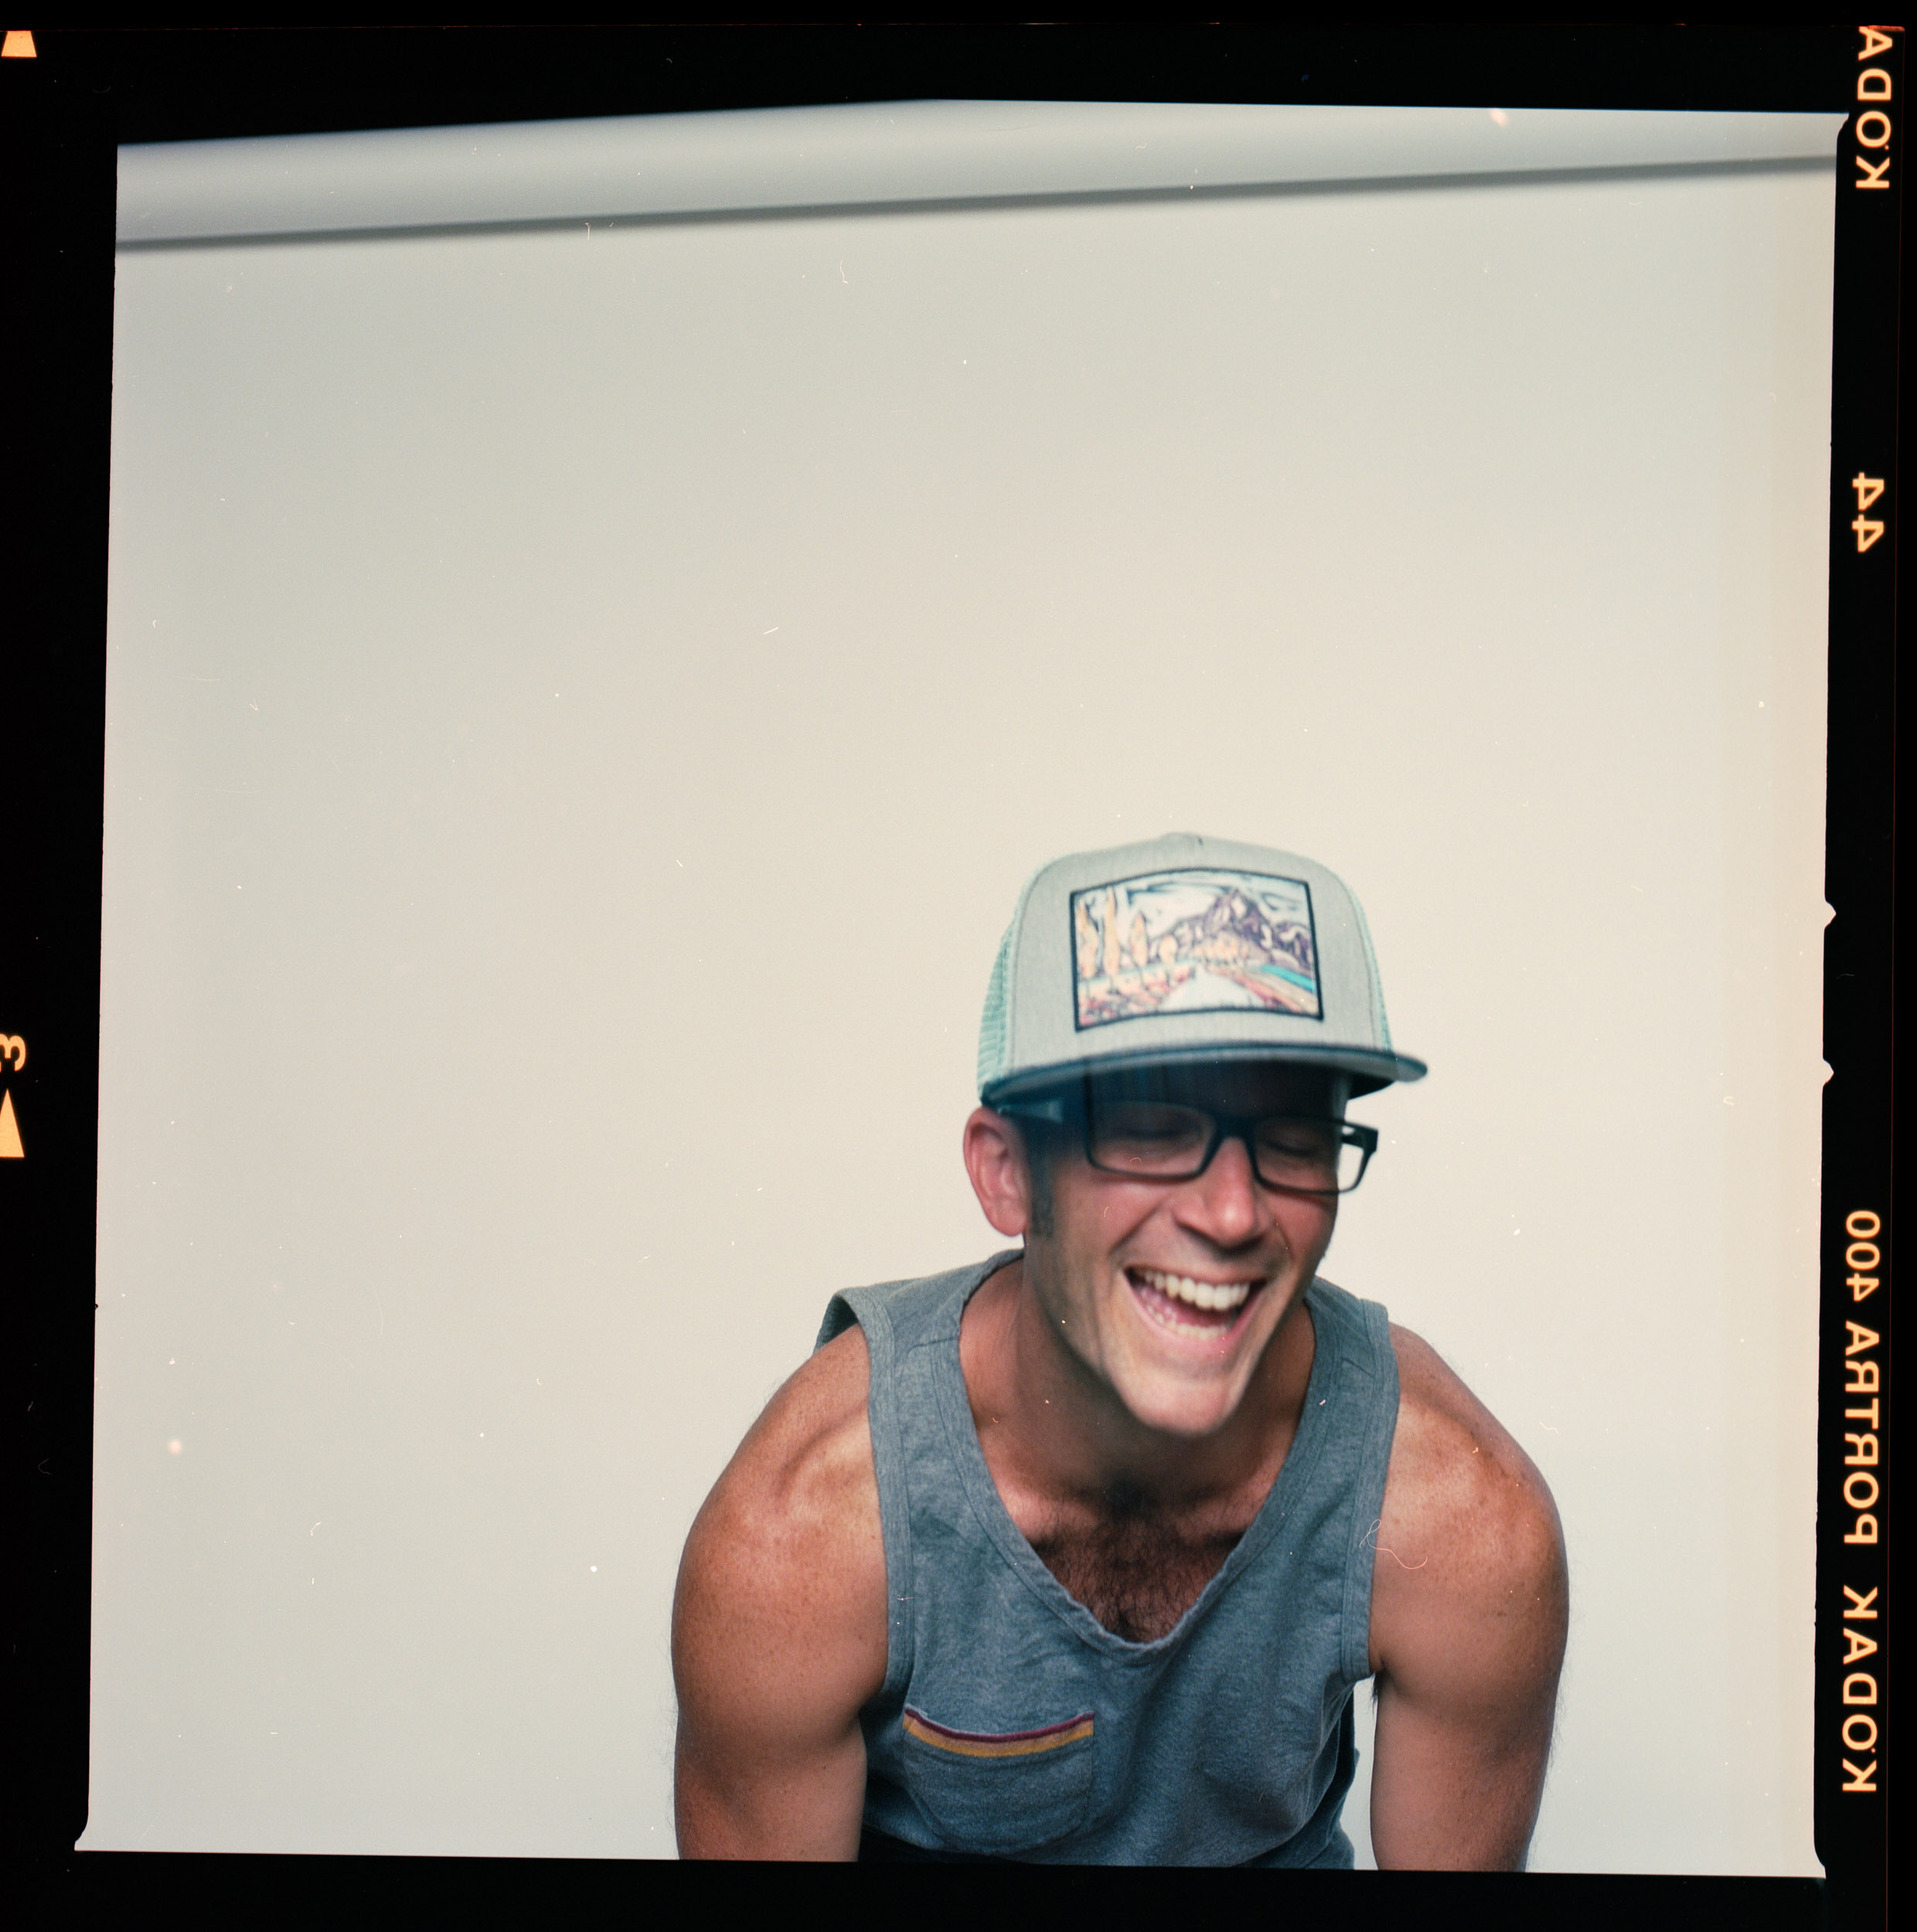 David_Agnello_polaroid_film_photography_412